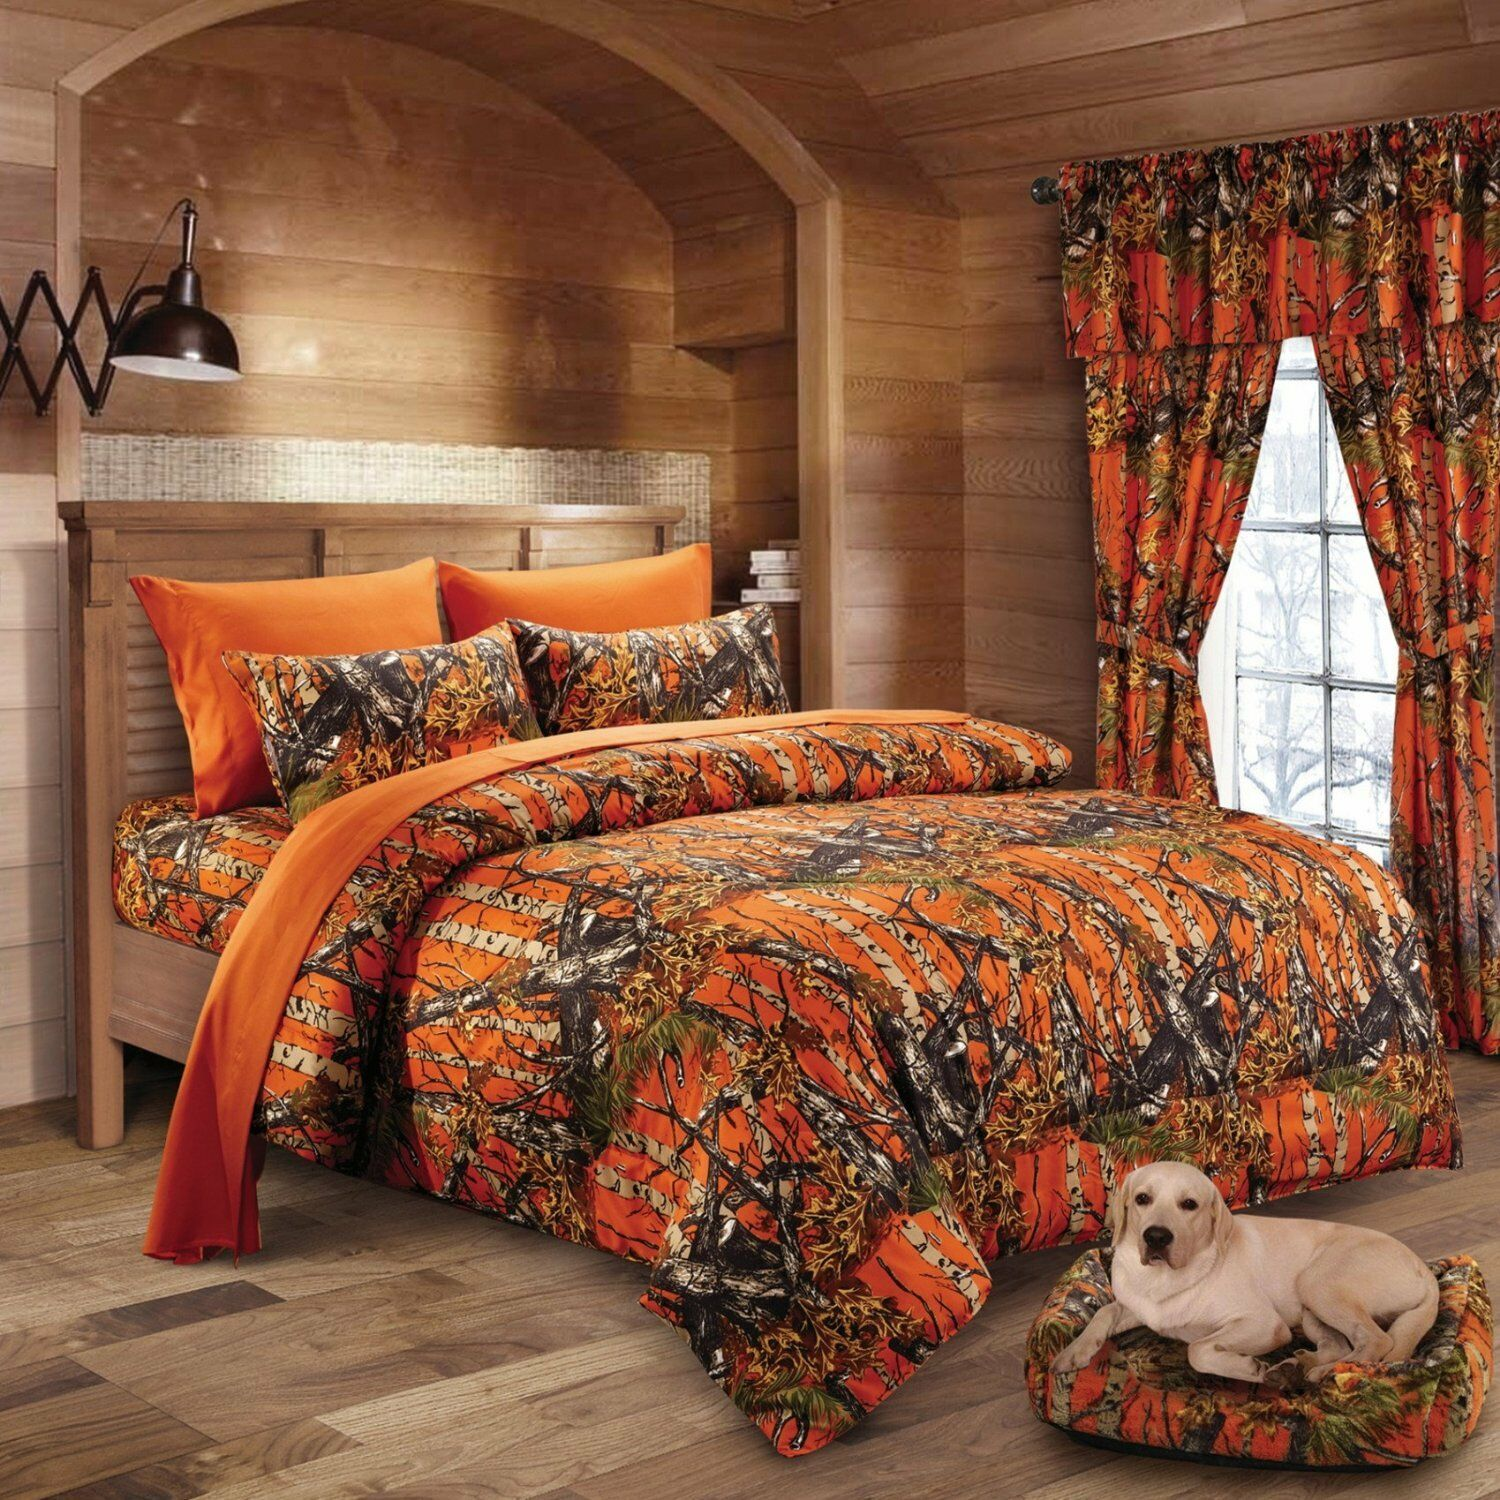 17 PC Orange CAMO COMFORTER SHEETS CAL KING Größe WITH 2 CURTAIN SETS CAMOUFLAGE